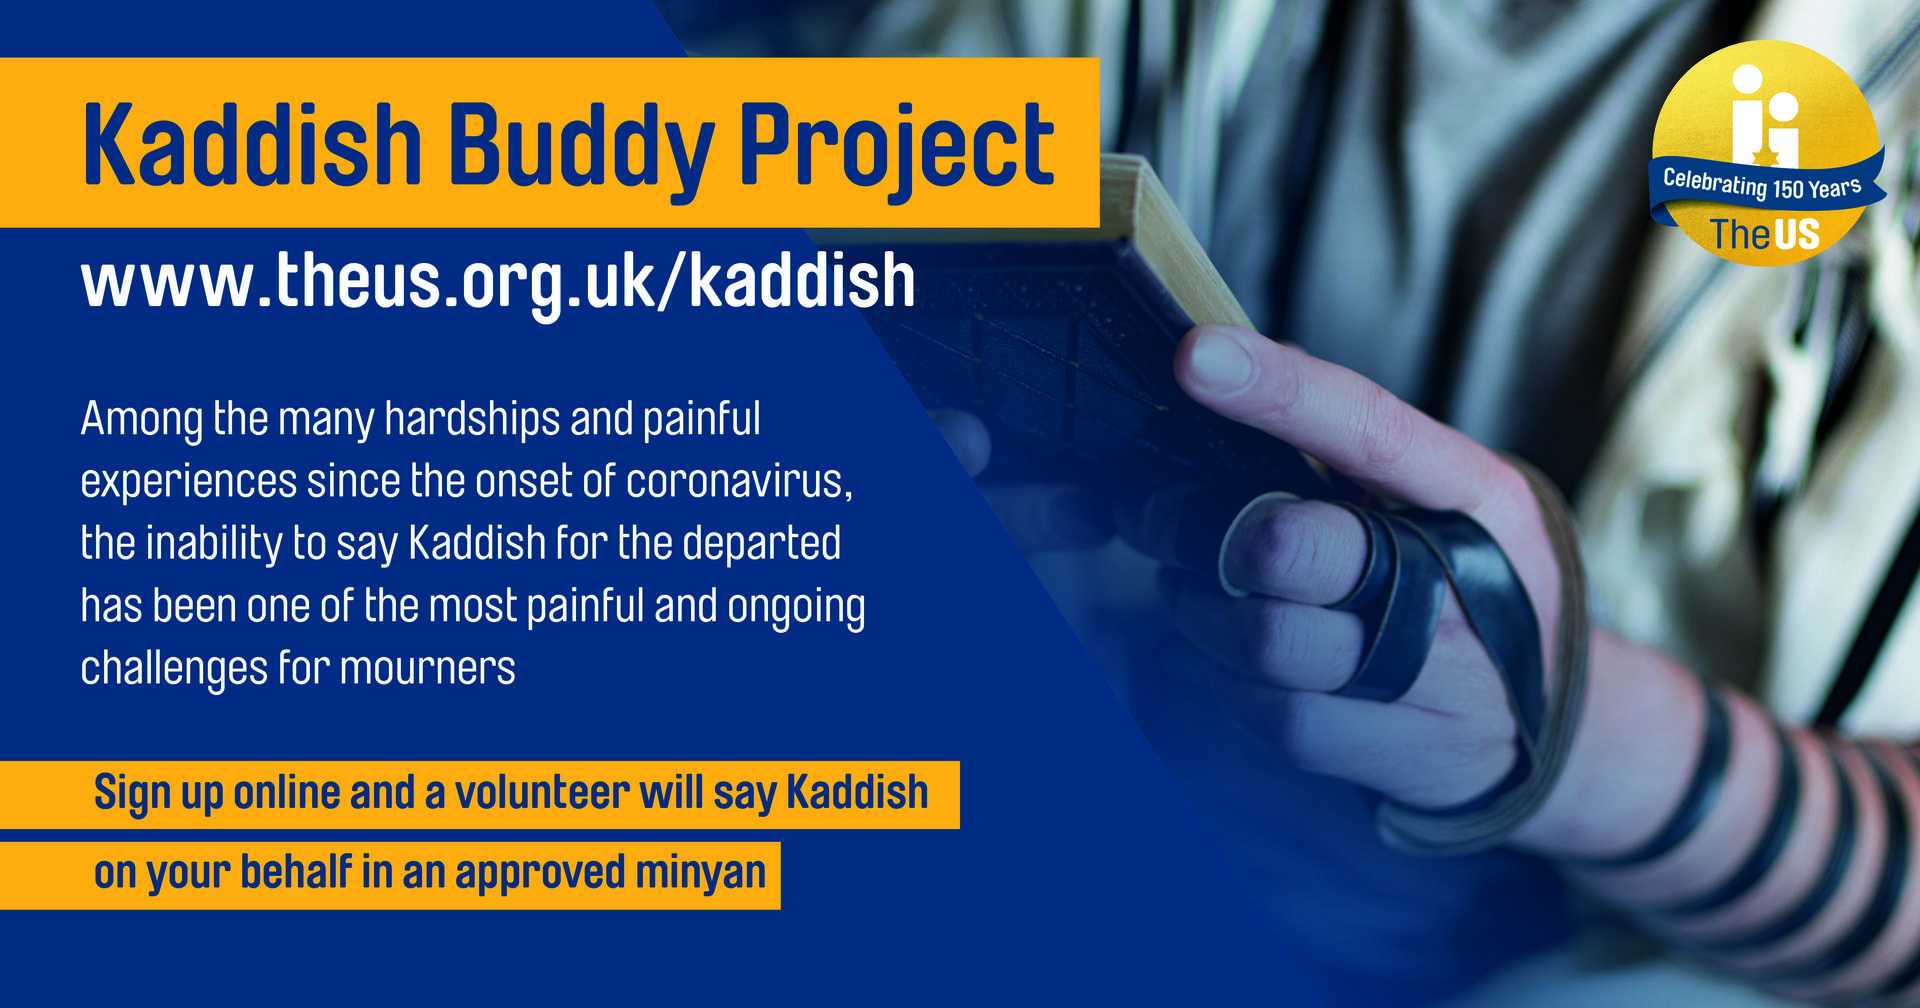 Kaddish Buddy Project